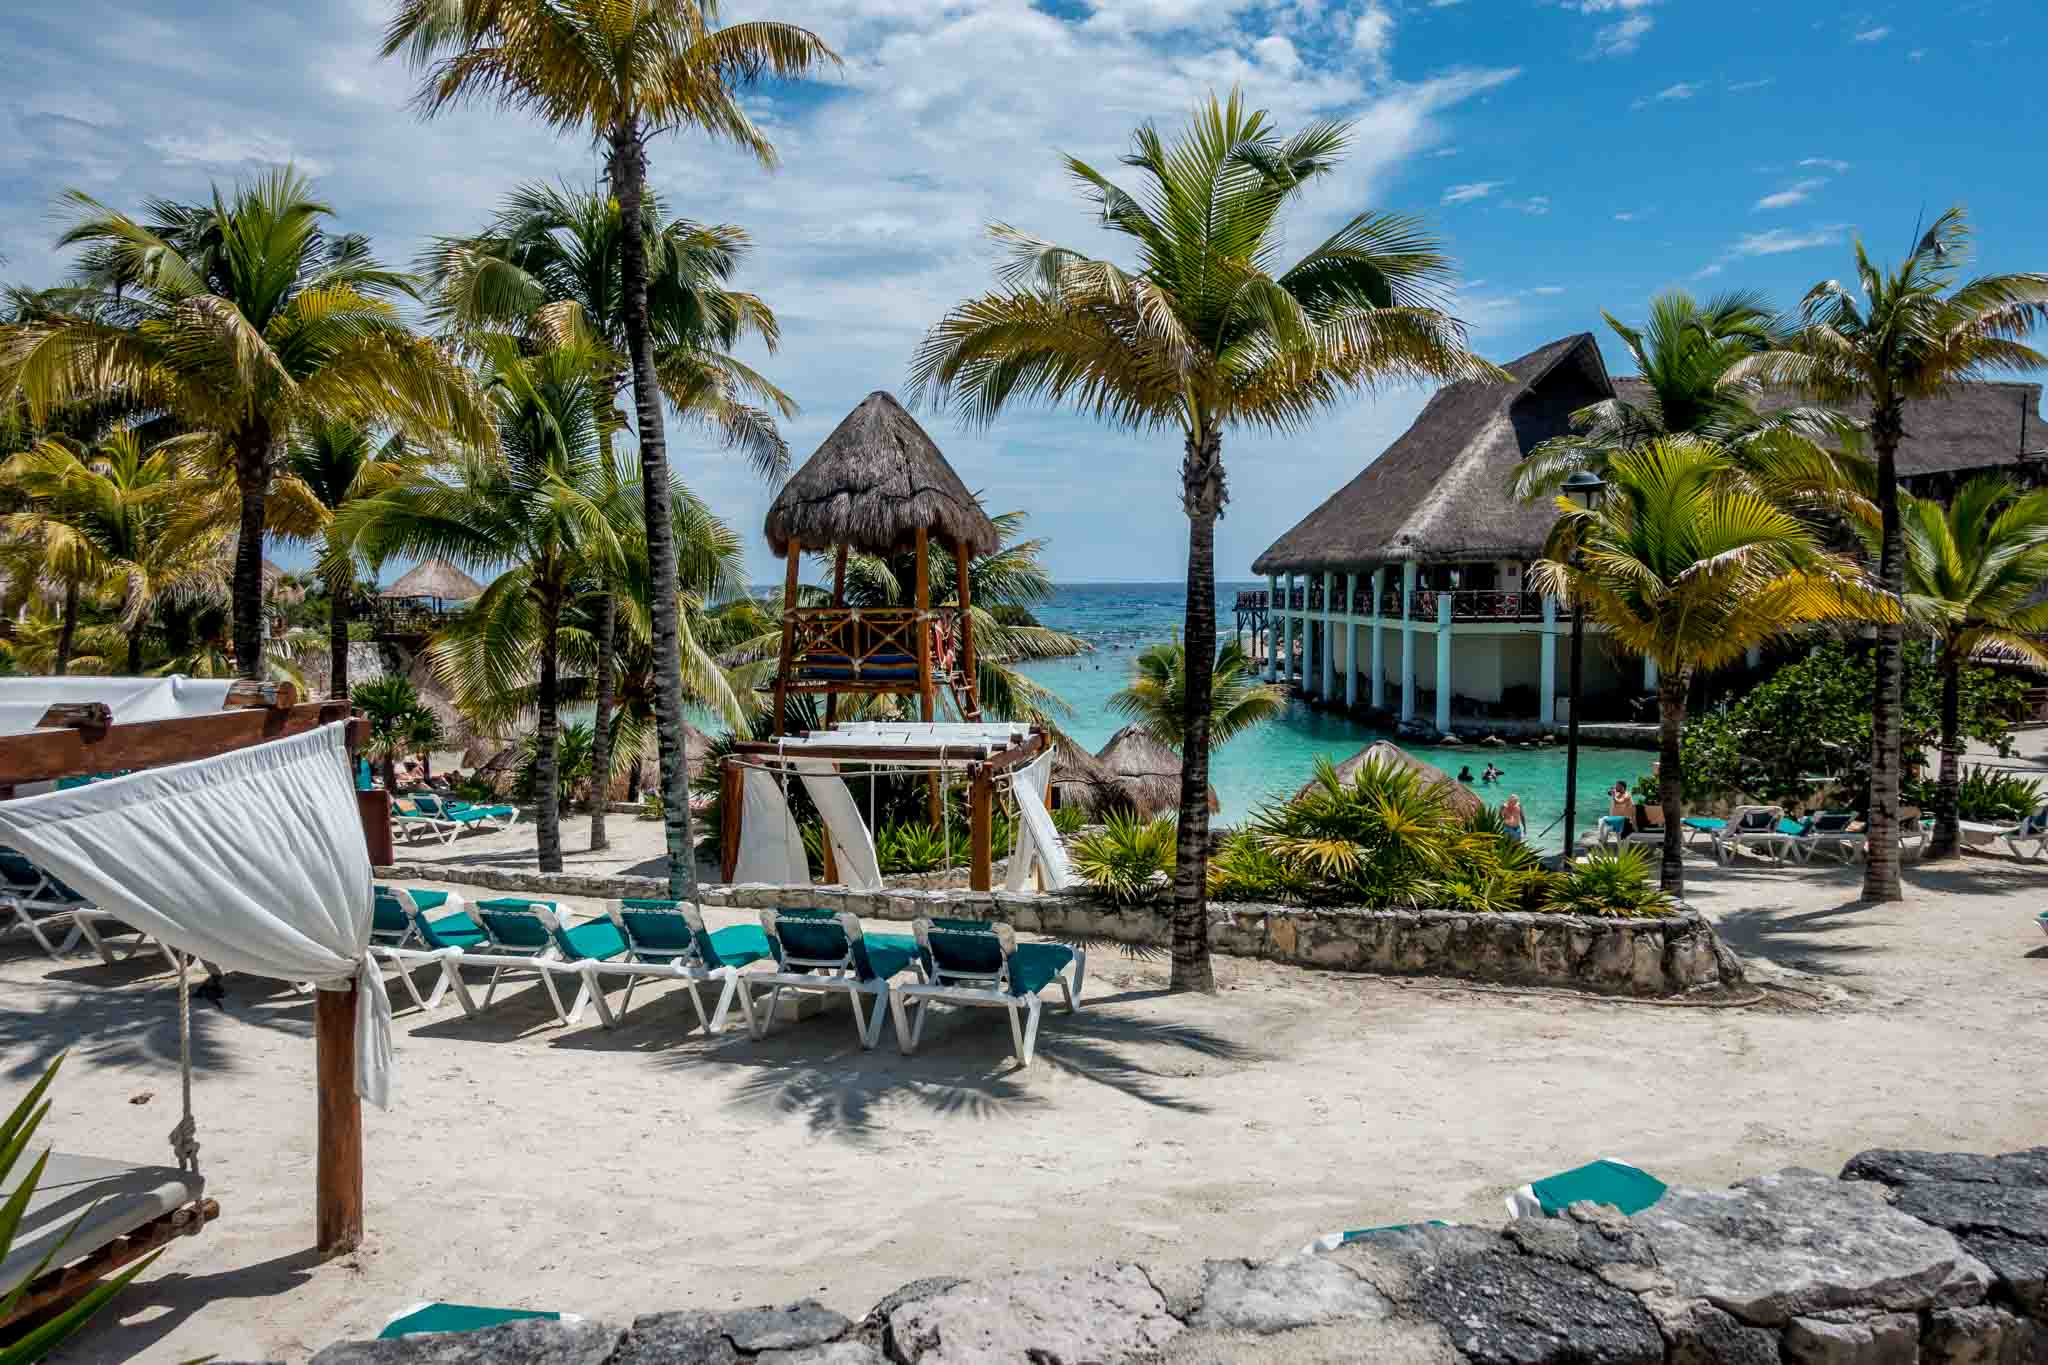 The beach area of the Occidental at Xcaret Destination, a resort hotel just 5 minutes from Xplor